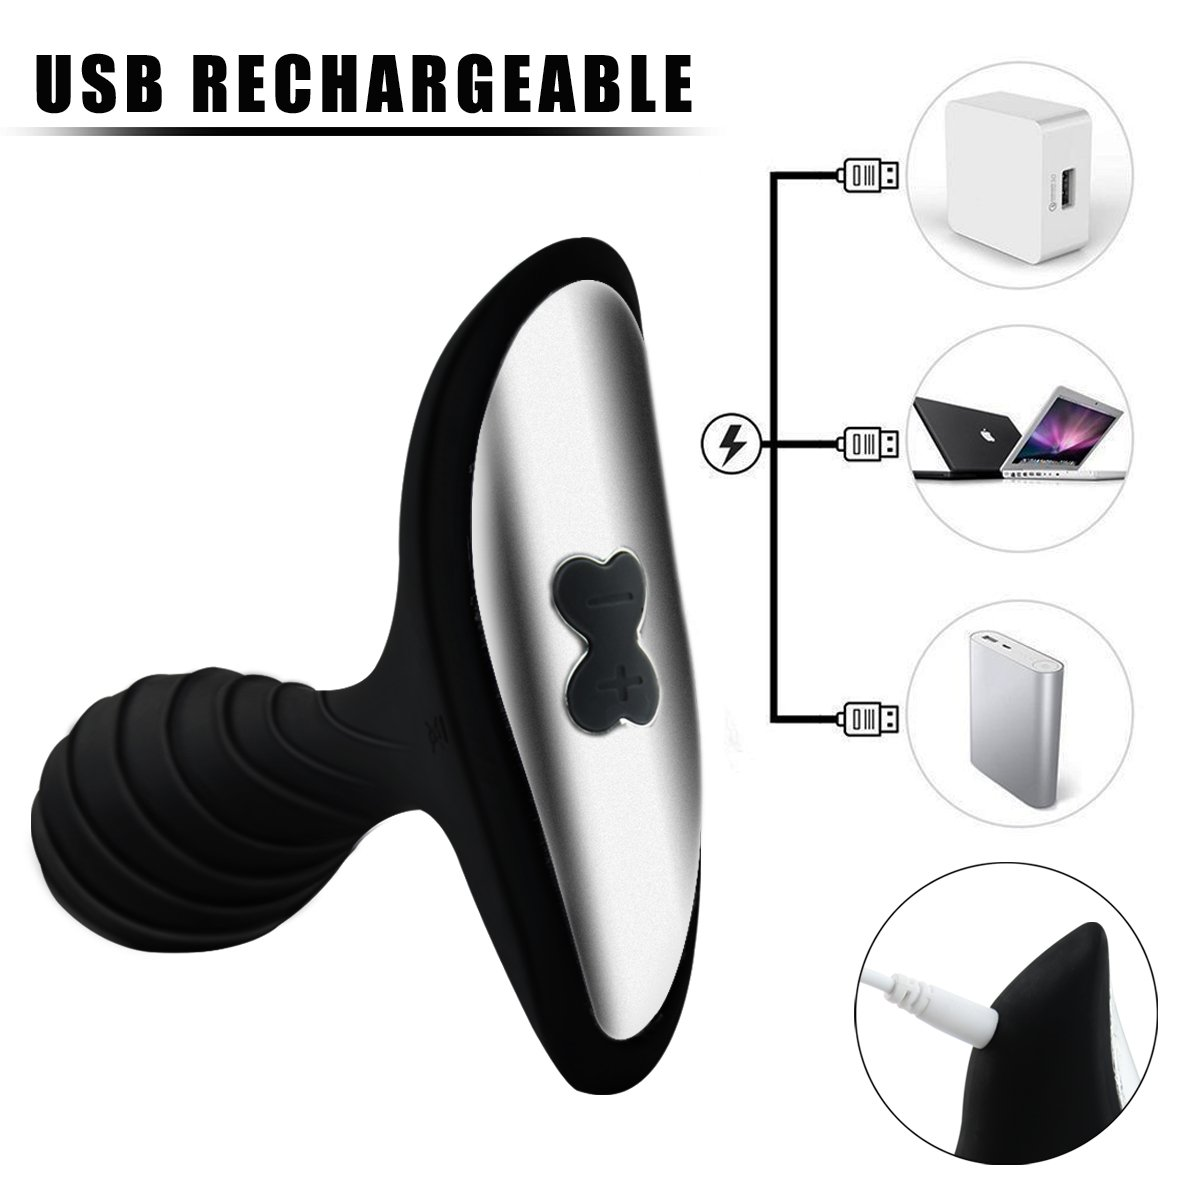 Anal Sex Toys with 10 Variable Vibration Modes for Safe AnalProstate Play, PALOQUETH Smooth Silicone Wireless Remote Butt PlugVibrator for Beginner Intermediate by PALOQUETH (Image #4)